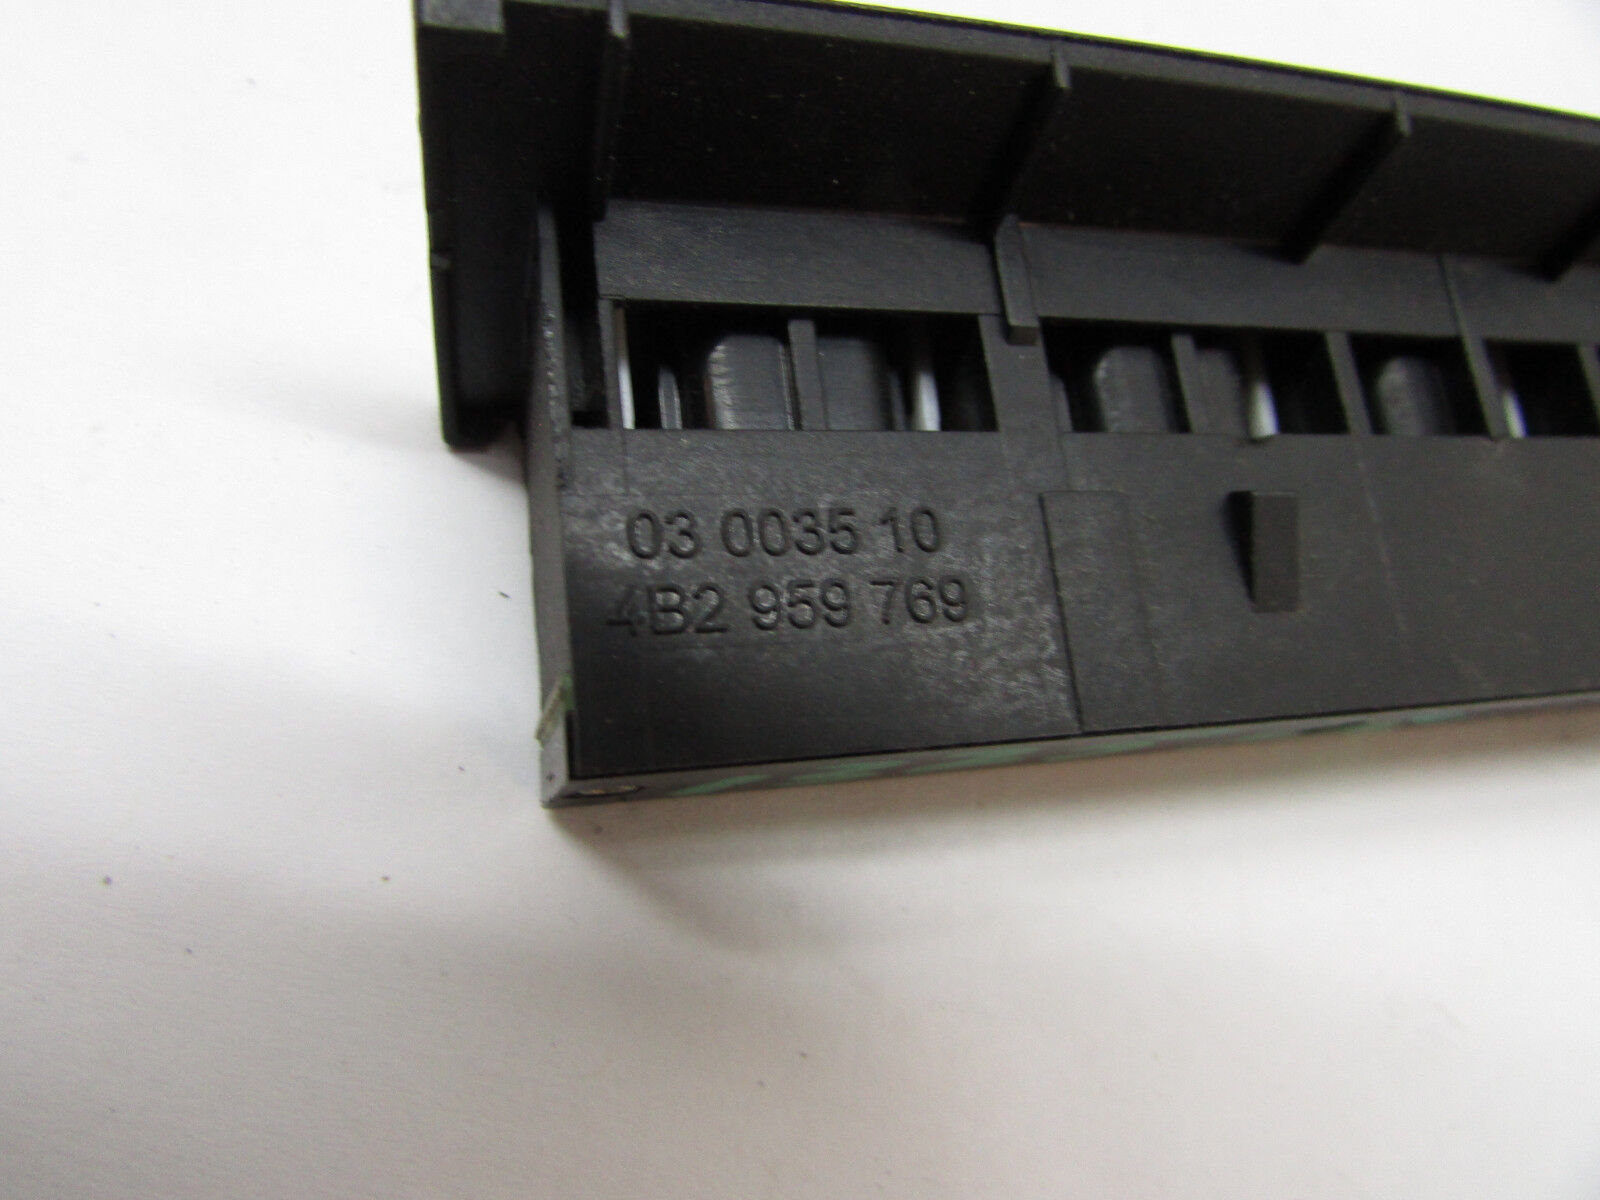 4B2 959 769 RH Front Seat Memory Switch Button Audi A6 S6 C5 Allroad